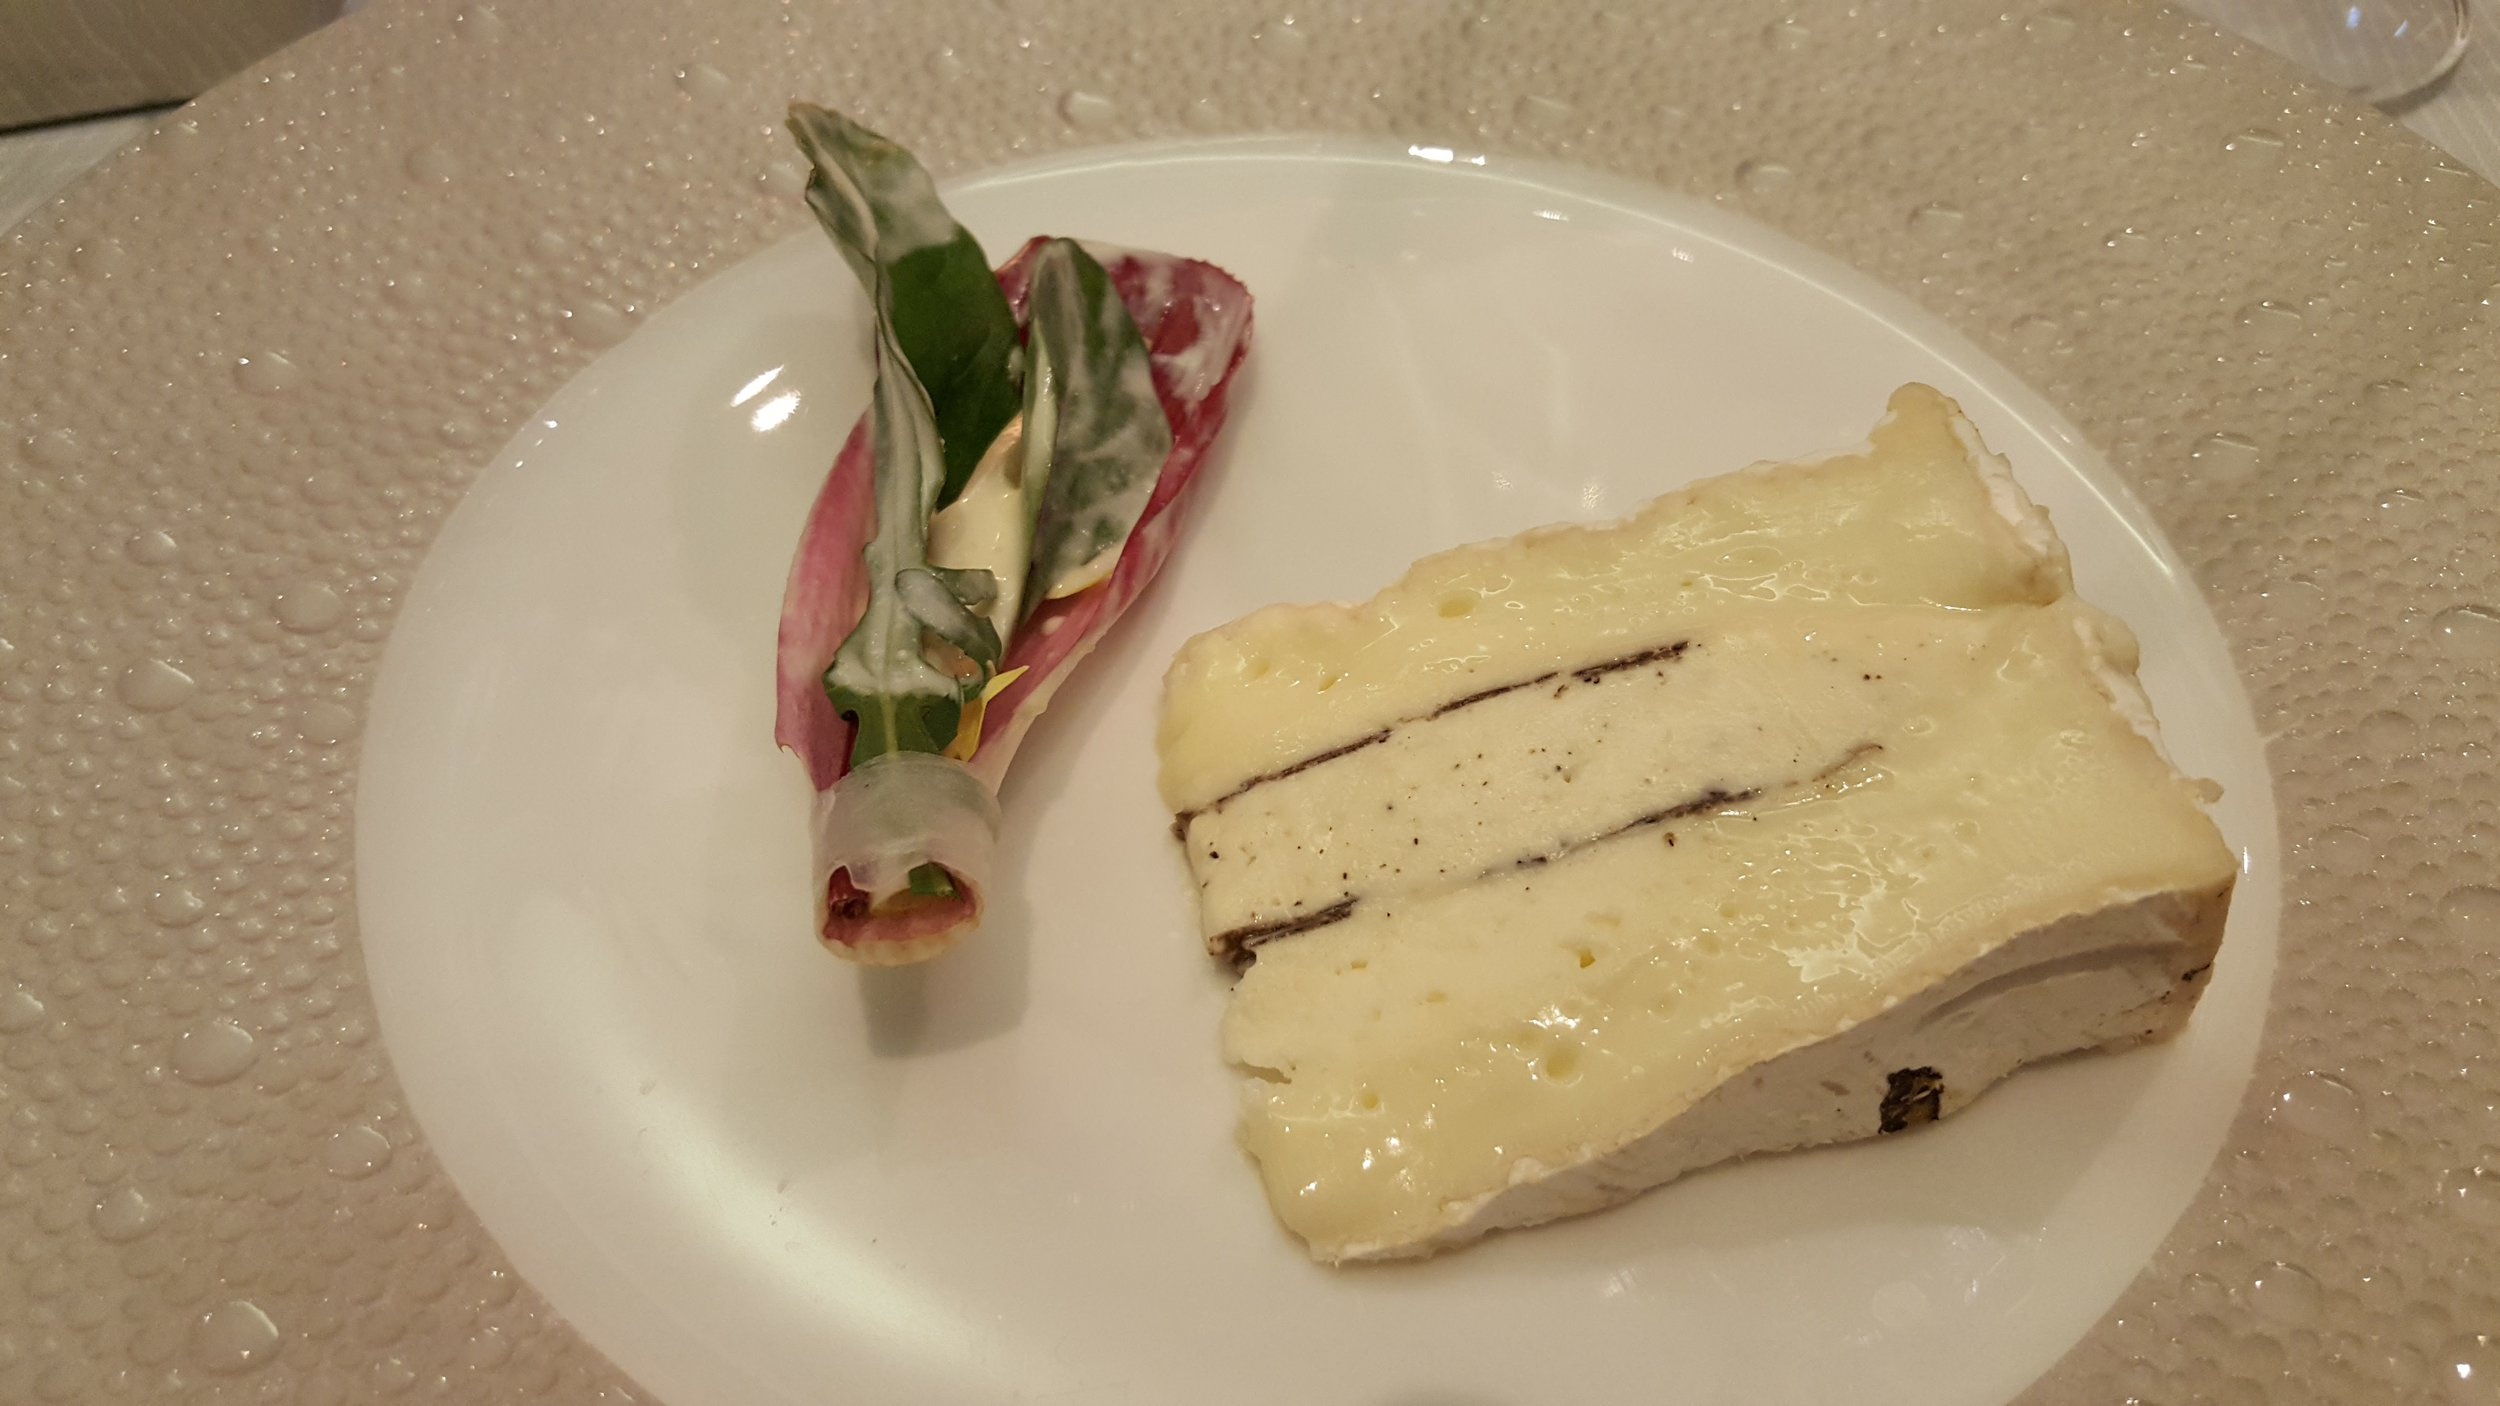 7: Fougeru with truffle, a Brie style stuffed with truffled Brillat Savarin